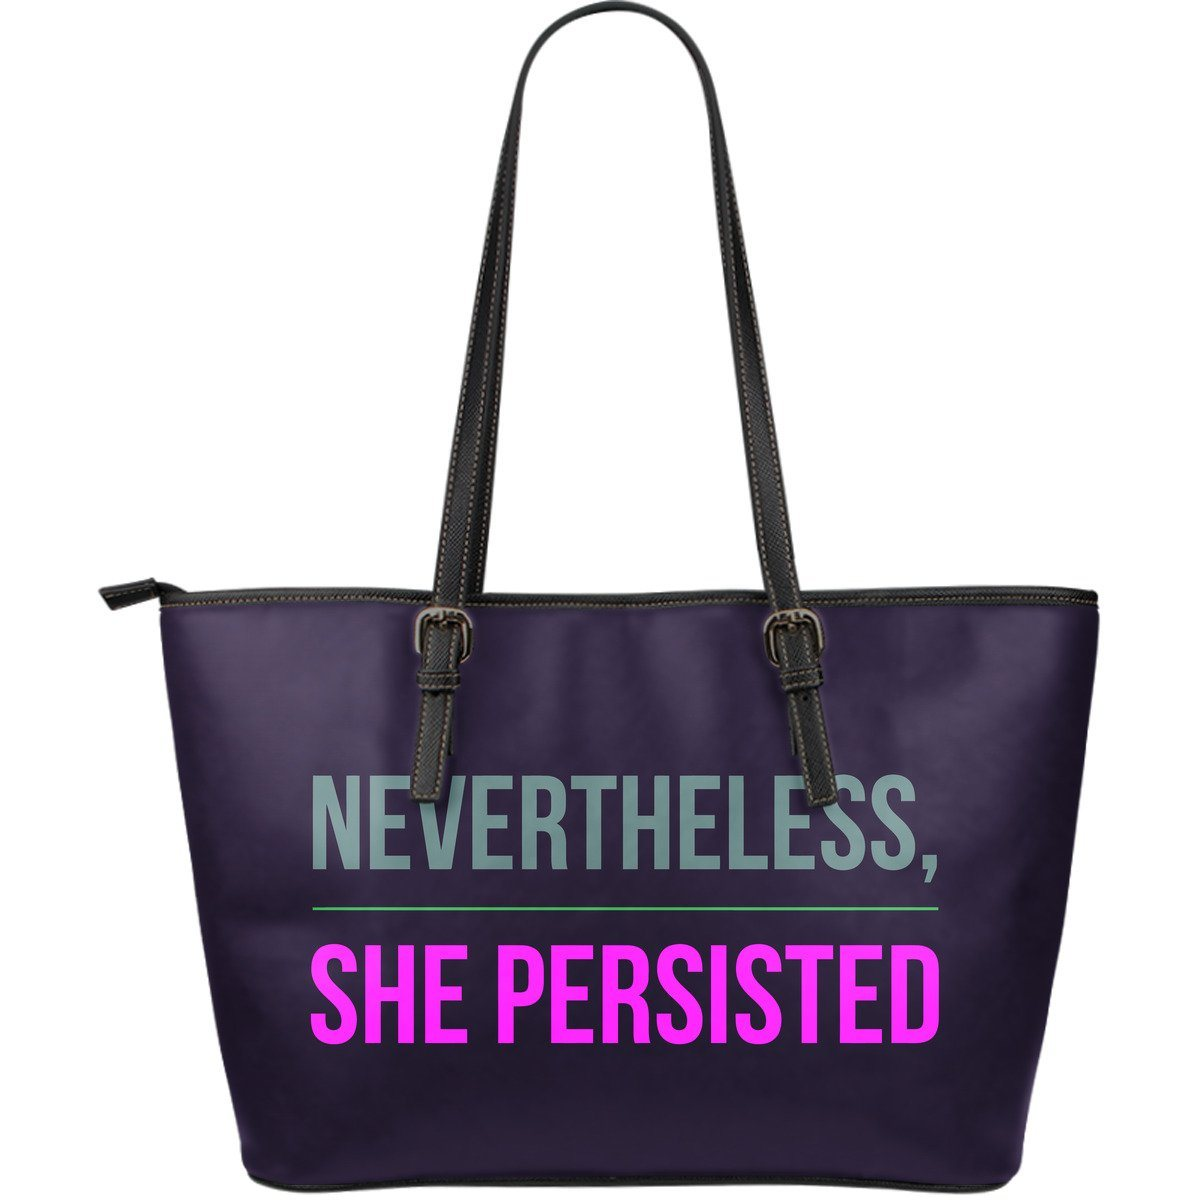 """Nevertheless, she persisted."" Vegan Leather Bag"